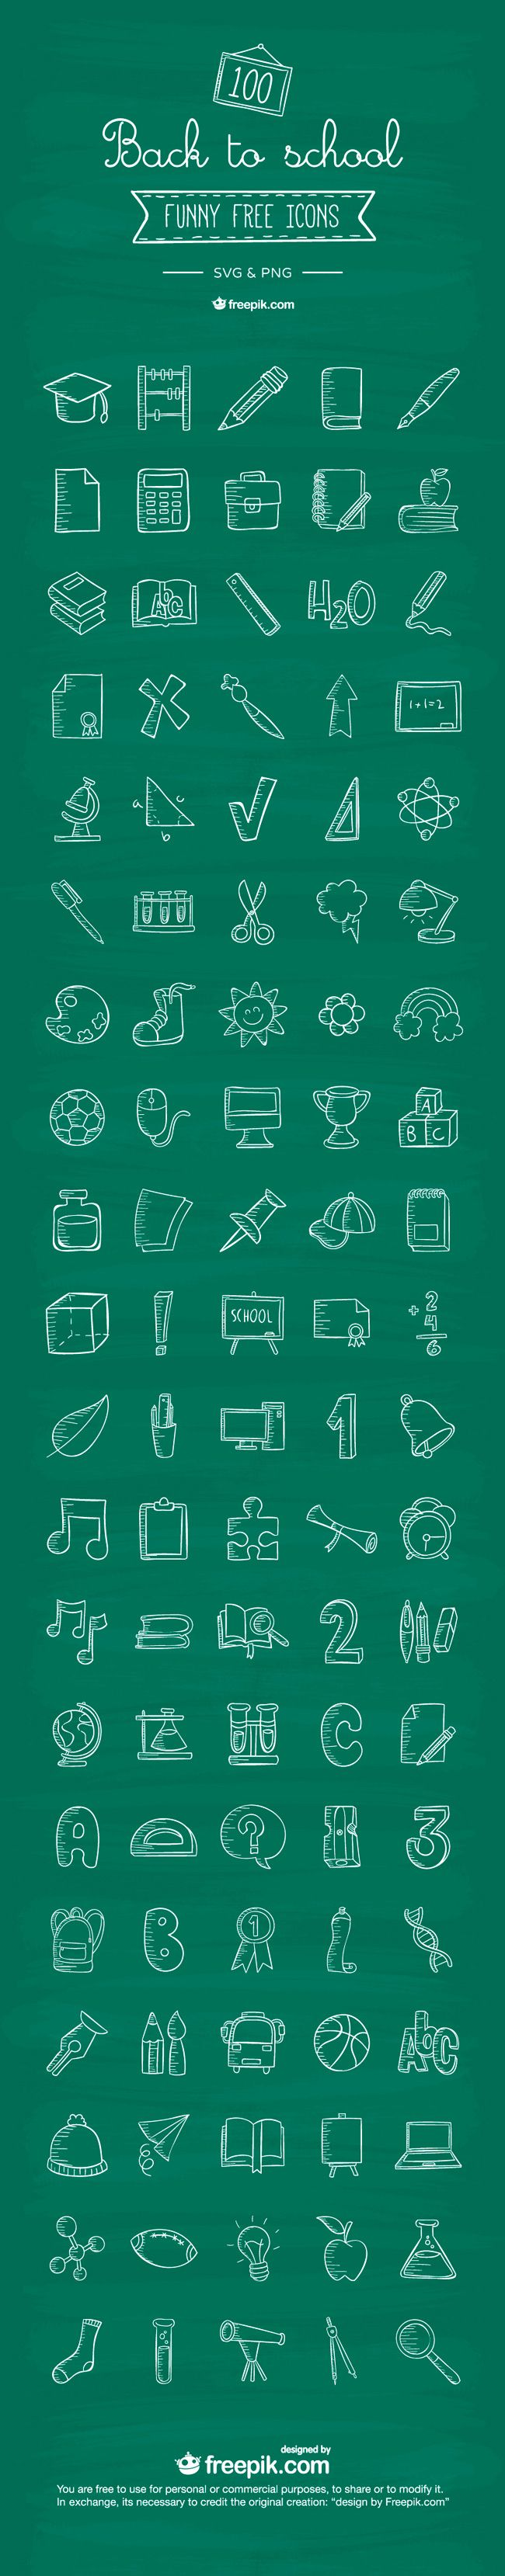 Free Download : 100 Back To School Icons